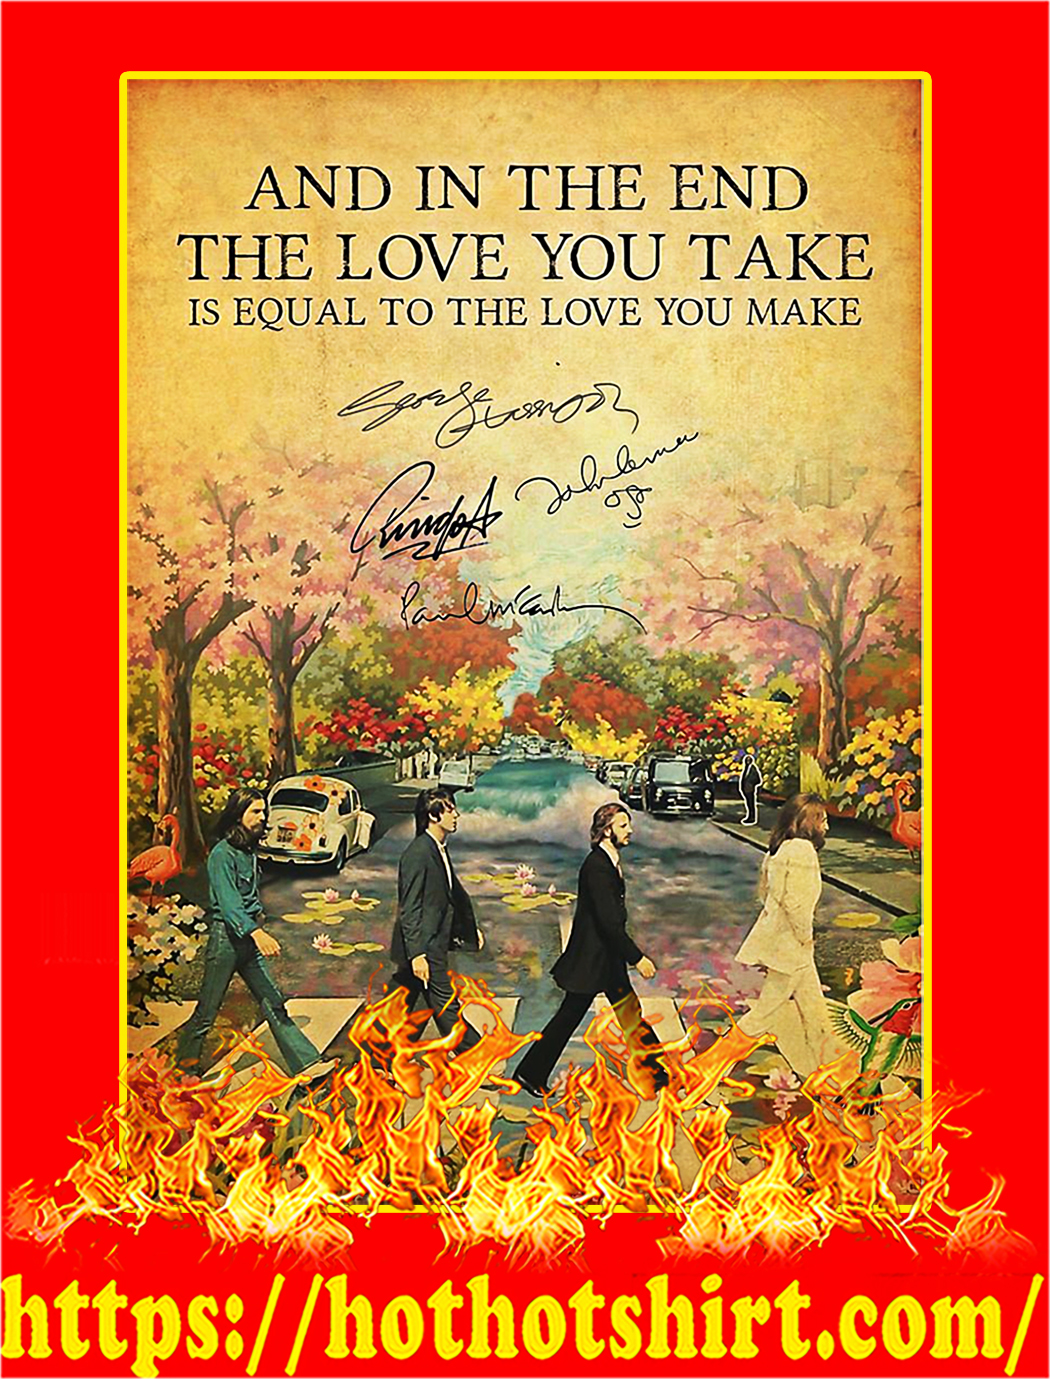 The Beatles And In The End Signature Poster - A2